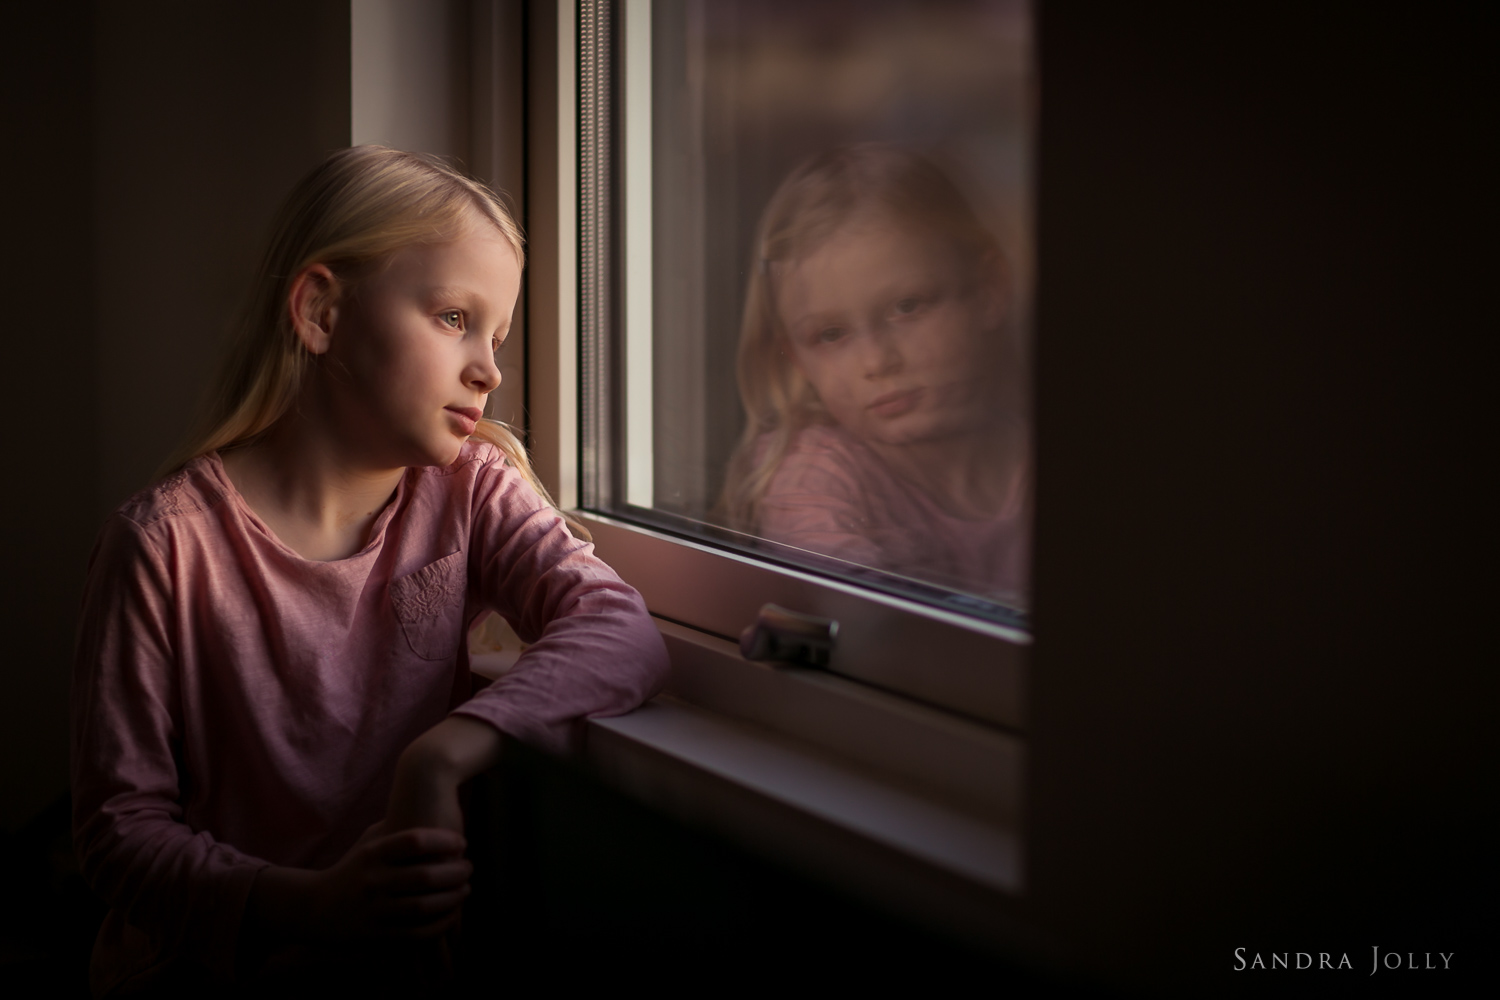 Photo-of-a-girl-and-her-window-reflection-by-Sandra-Jolly.jpg